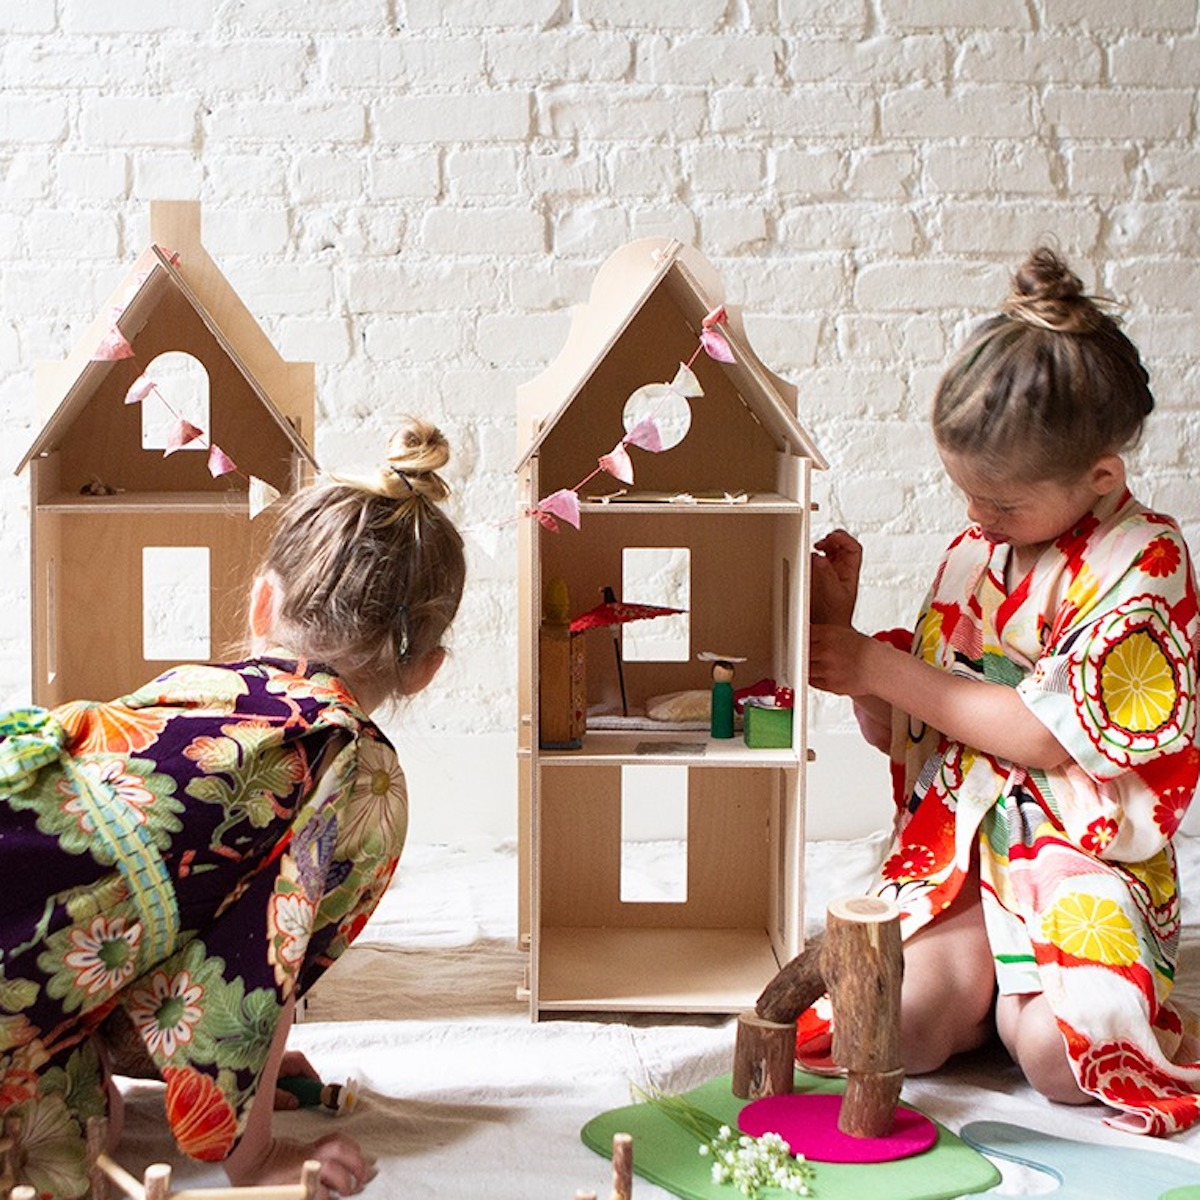 Two little girls wearing kimonos and playing on the floor with a Maquette Kids dollhouse